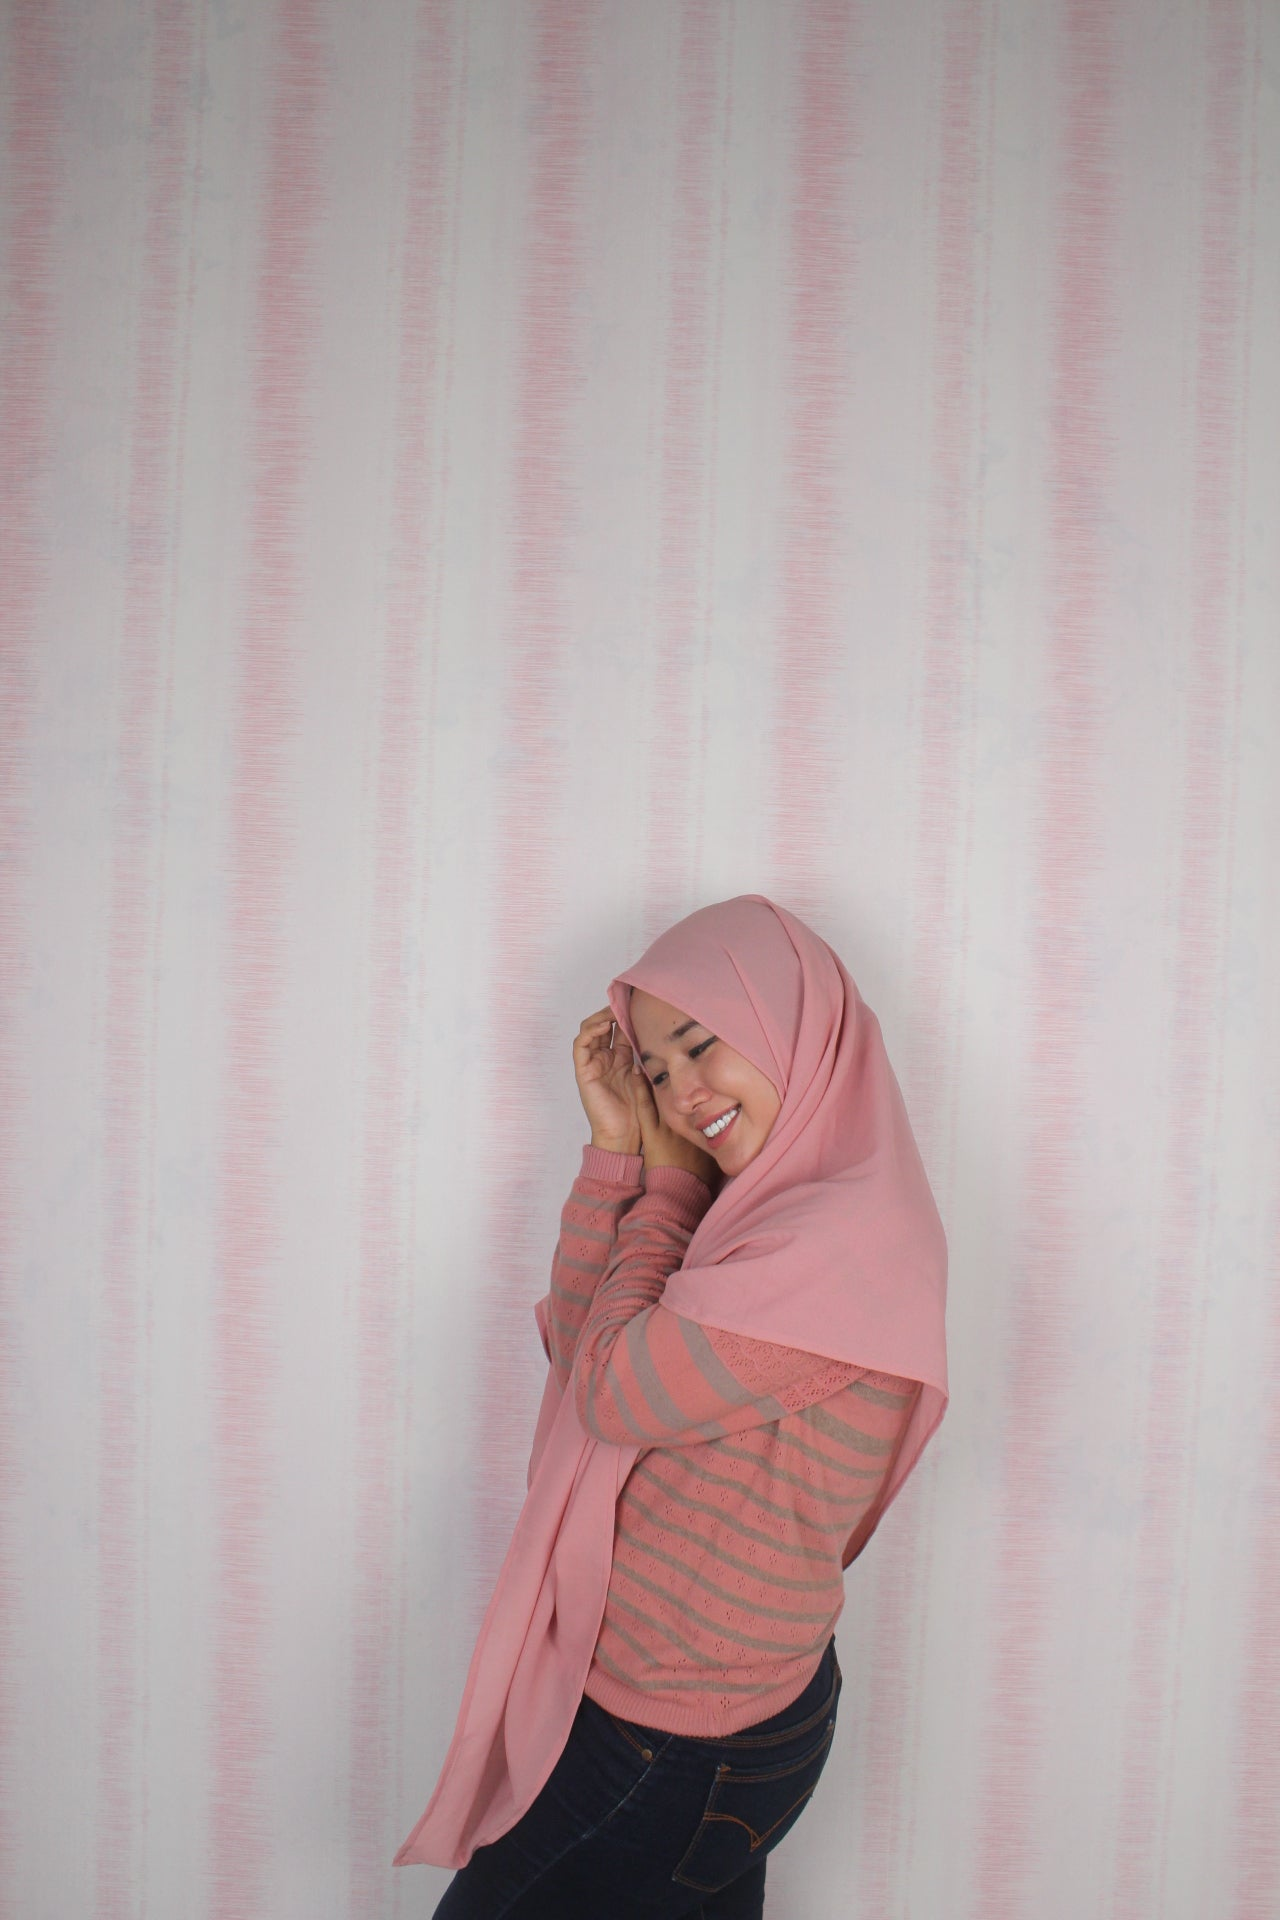 Wallpaper Dinding Polos Pink Putih RO120 - Java Wallpaper